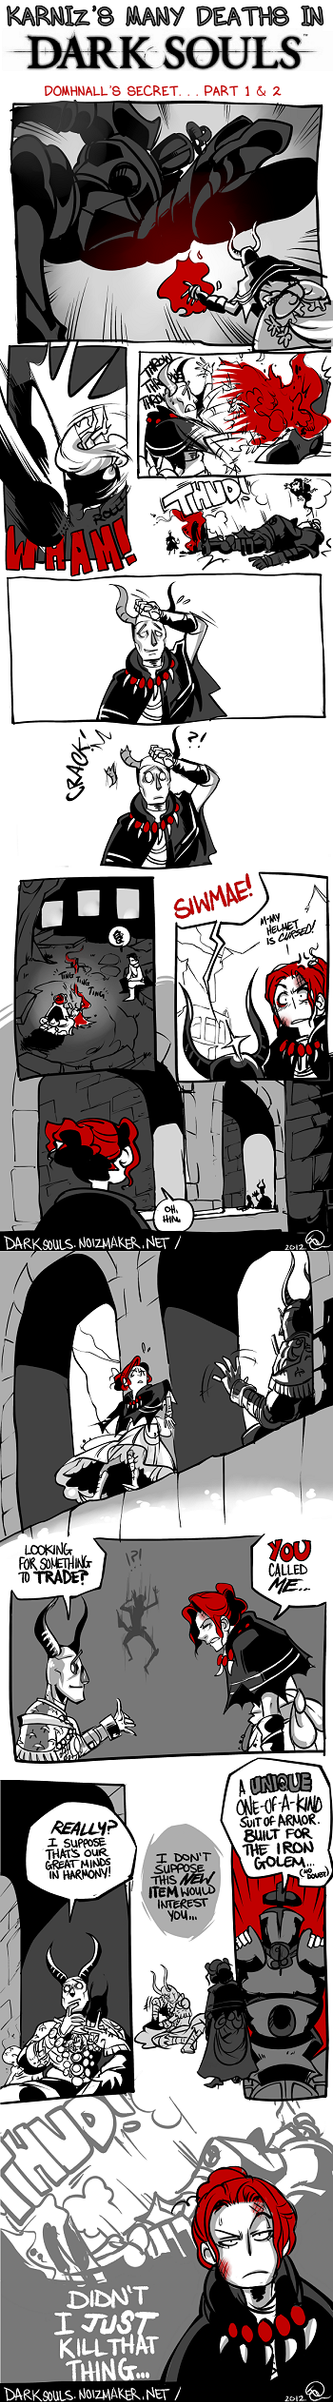 Dark Souls: Domhnall's Secret Part 1 + 2 by karniz